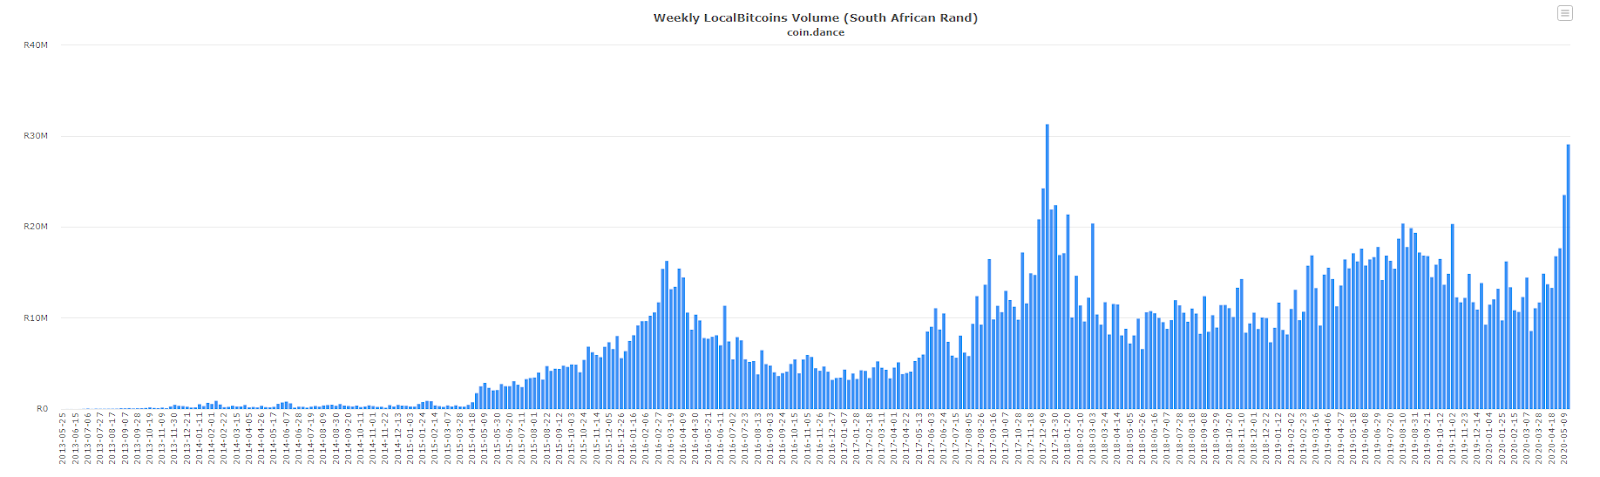 Weekly Localbitcoins trade volume: Coin.dance